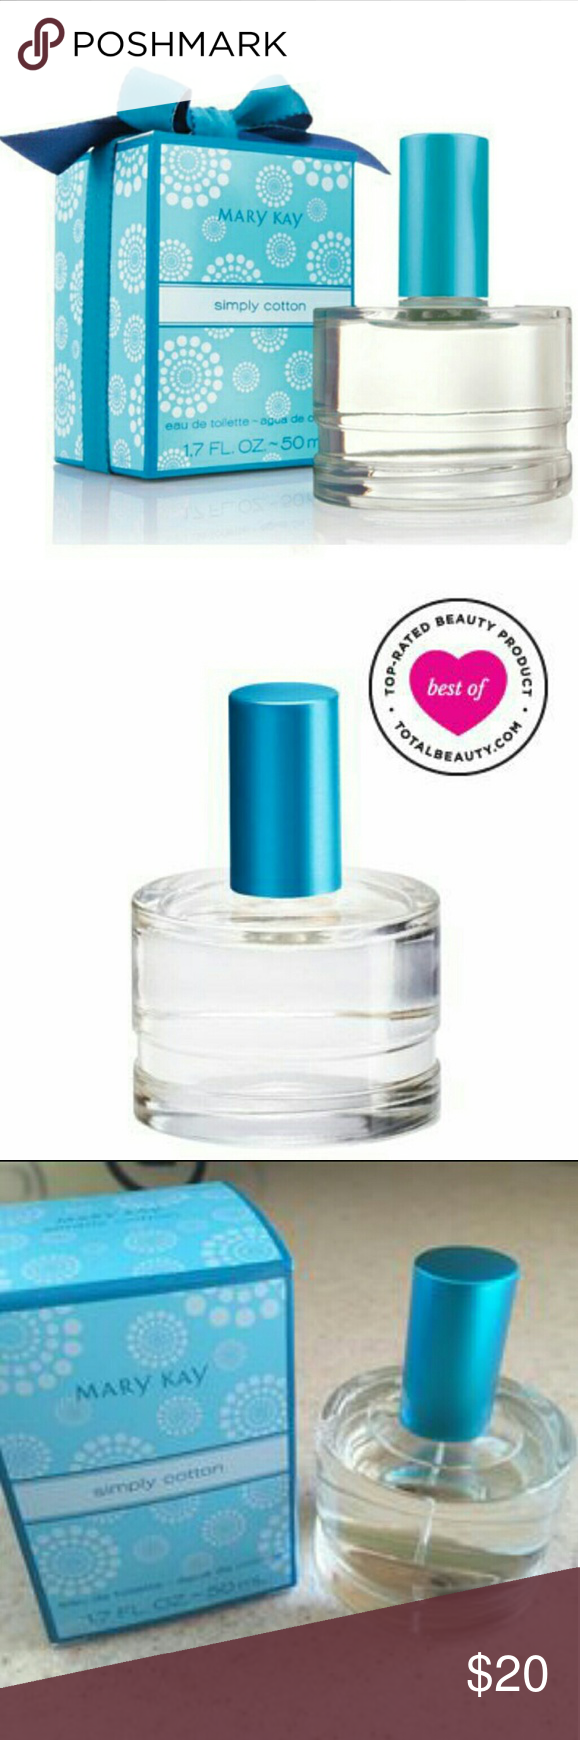 """Mary Kay Perfume Simply Cotton  1.7 oz Eau de Toilette  Only opened for picture   """"Light, crisp refreshing scent, featuring lotus and cotton flower"""" Perfect scent for spring! Discontinued, hard to find product Mary Kay Makeup"""